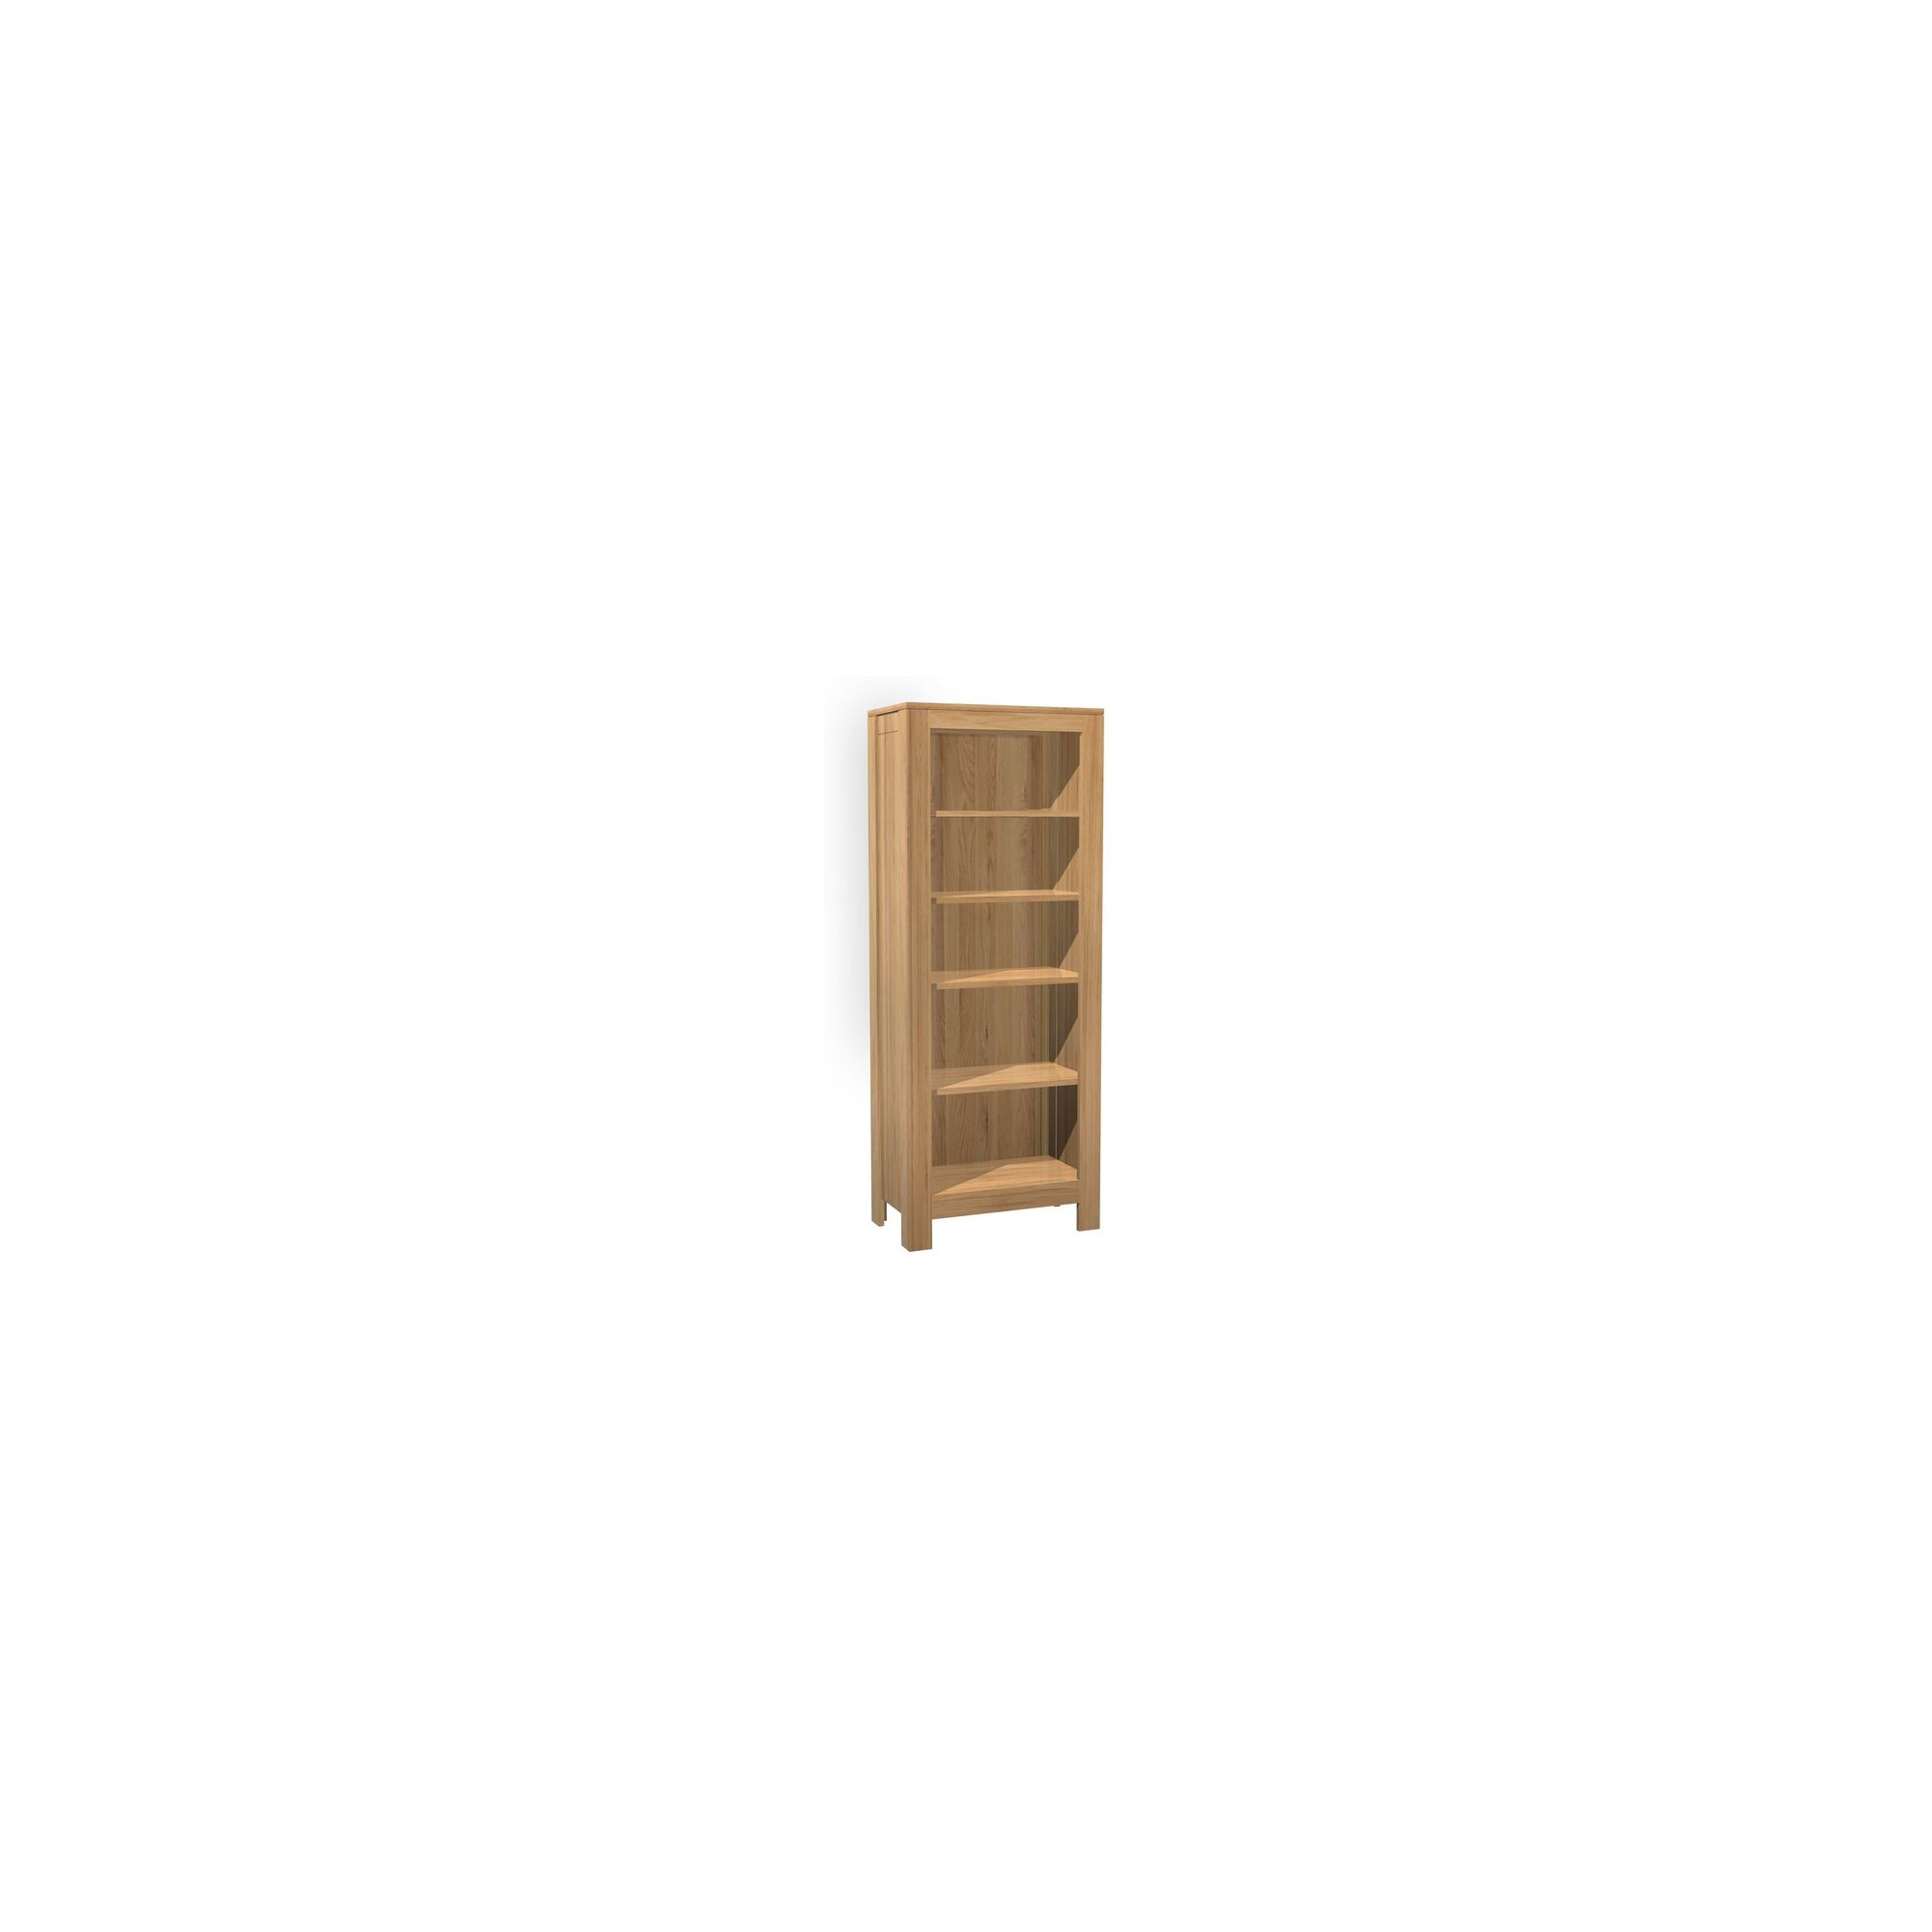 Kelburn Furniture Milano Tall Bookcase in Clear Satin Lacquer at Tescos Direct